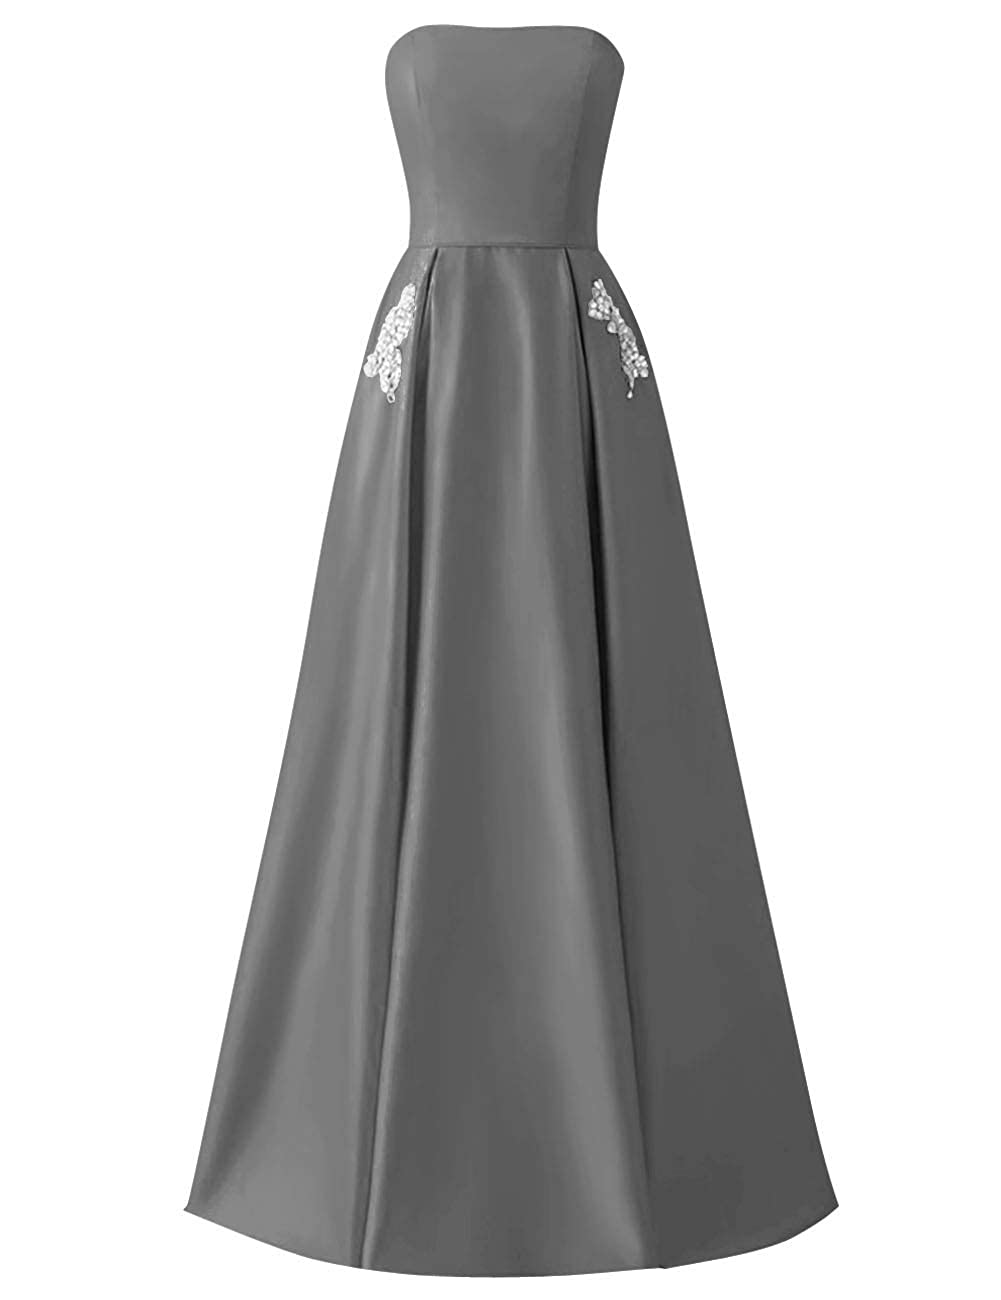 Steel Grey MorySong Women Strapless Beading Pocket Prom Dress Satin Long Evening Party Gown